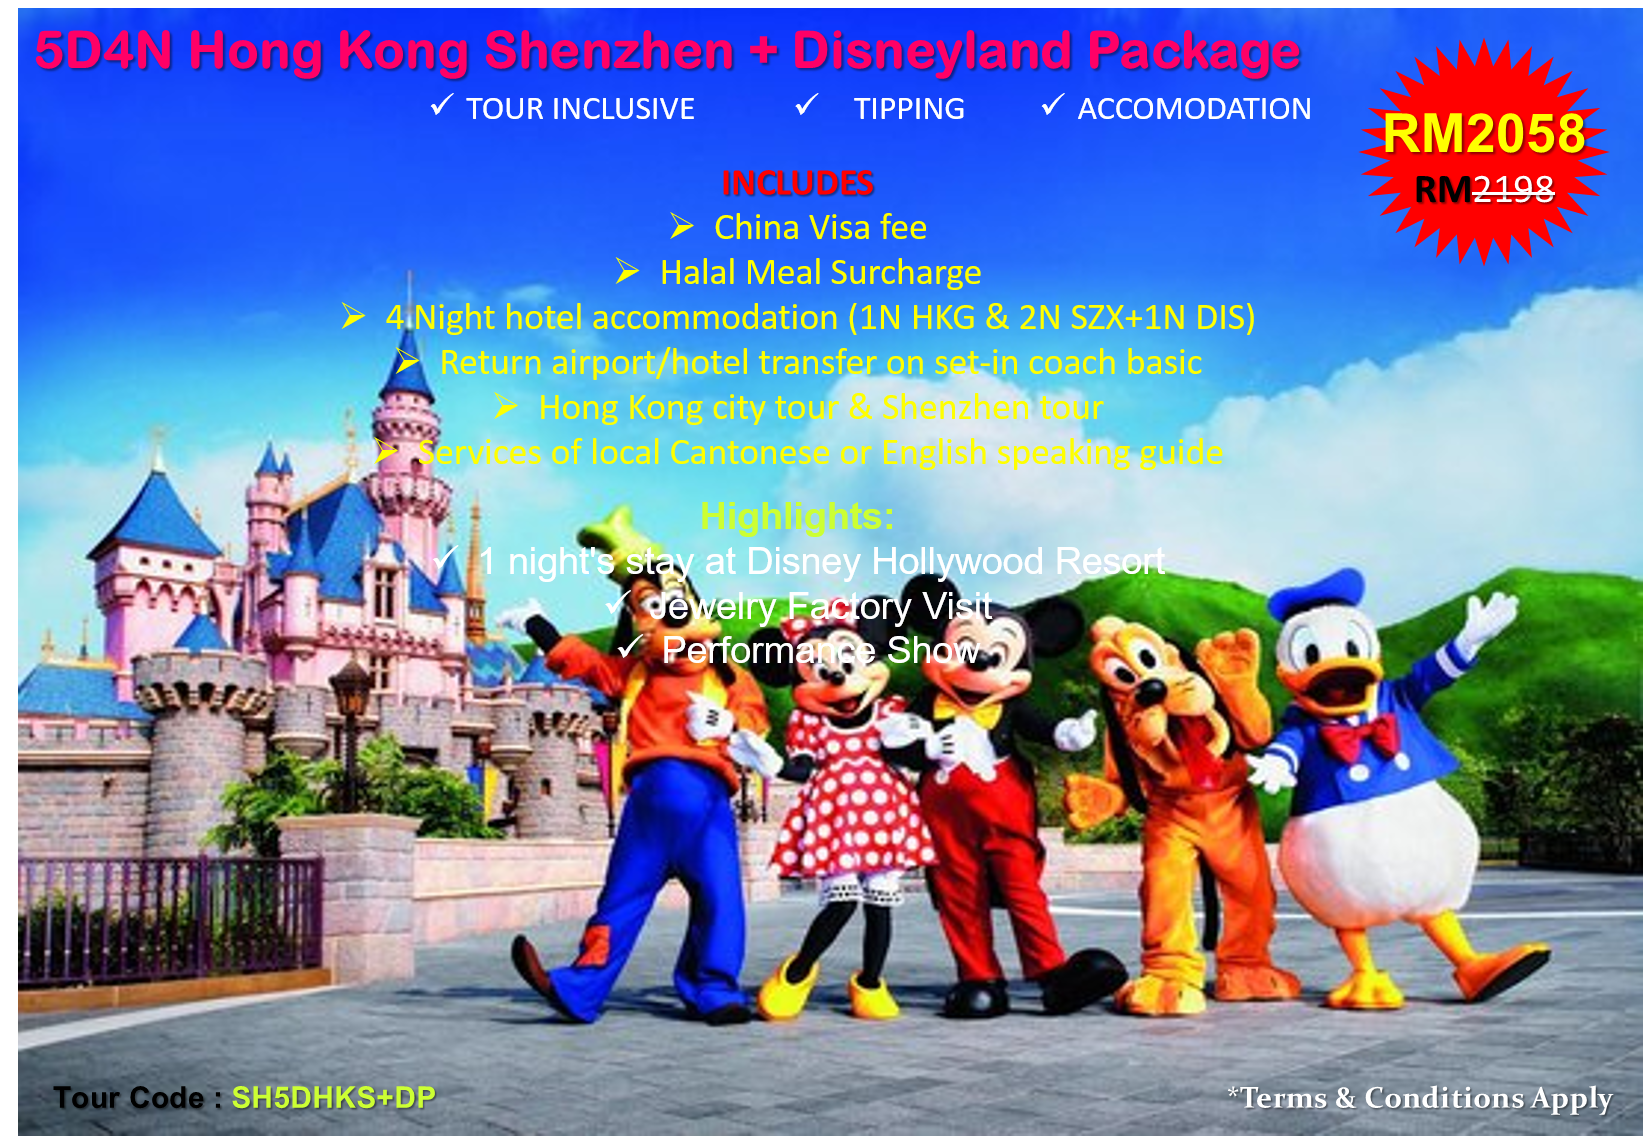 5D4N Hong Kong Shenzhen + Disneyland Package